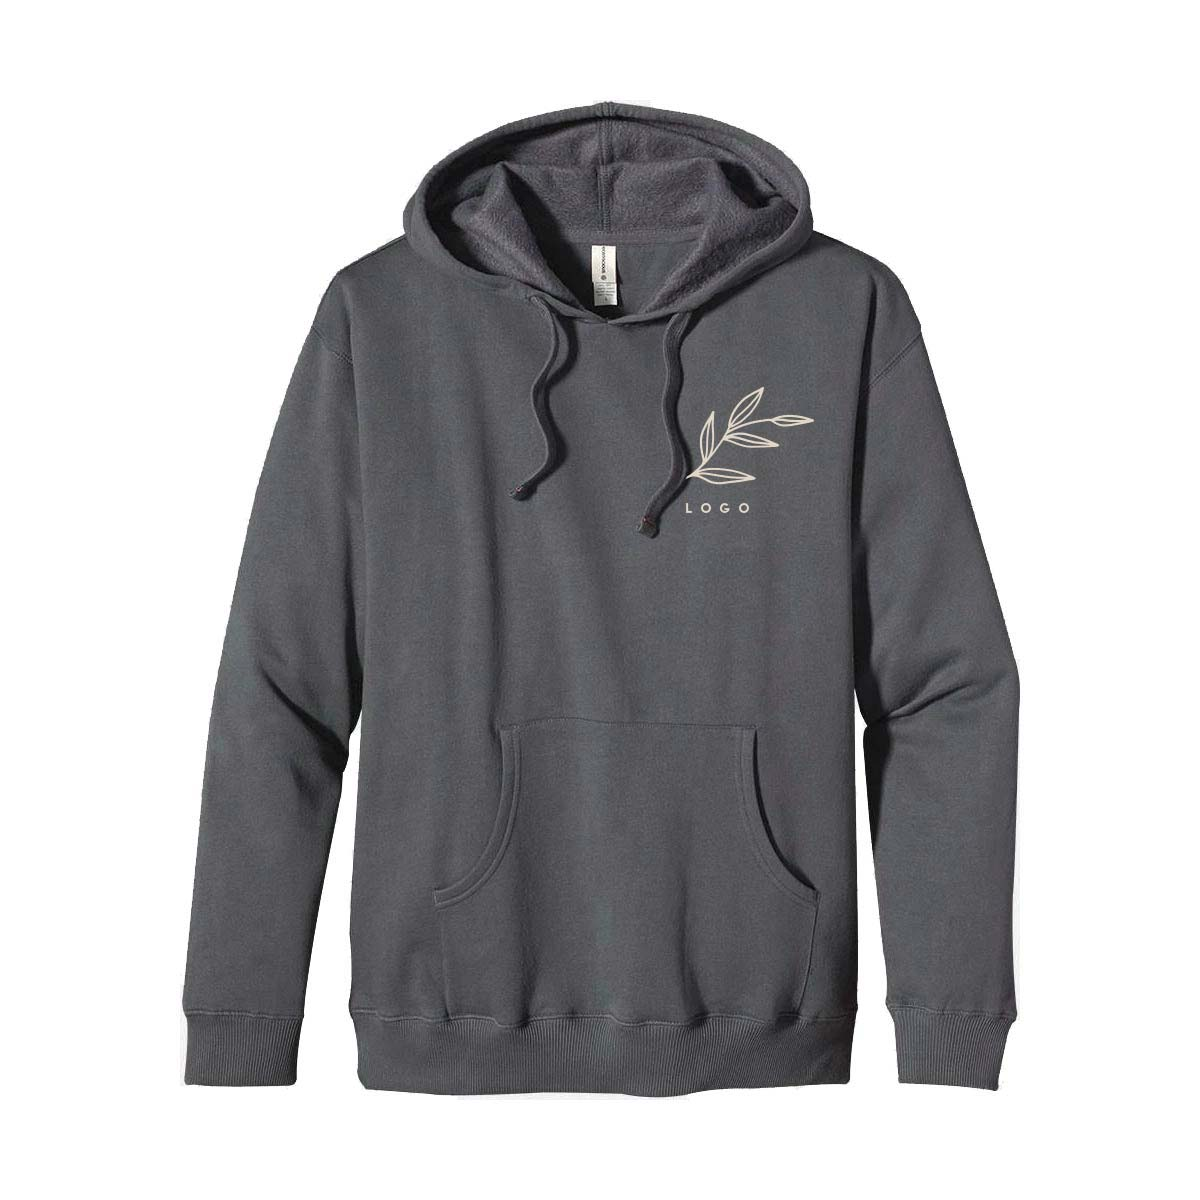 287550 organic recycled pullover hoodie one color one location imprint